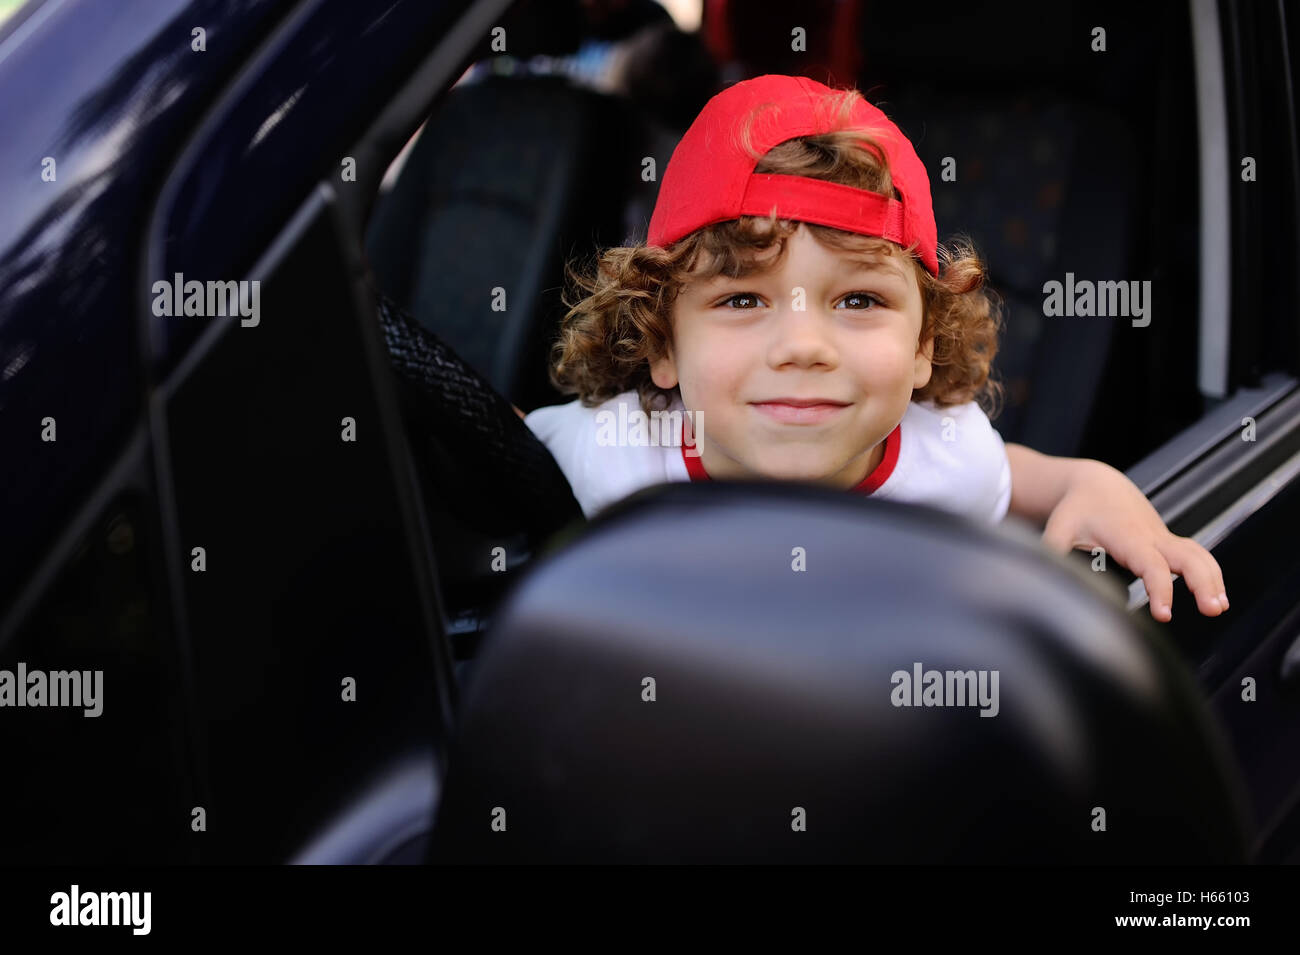 906cf4d21 child with curly hair and a red cap sits behind the wheel of car ...